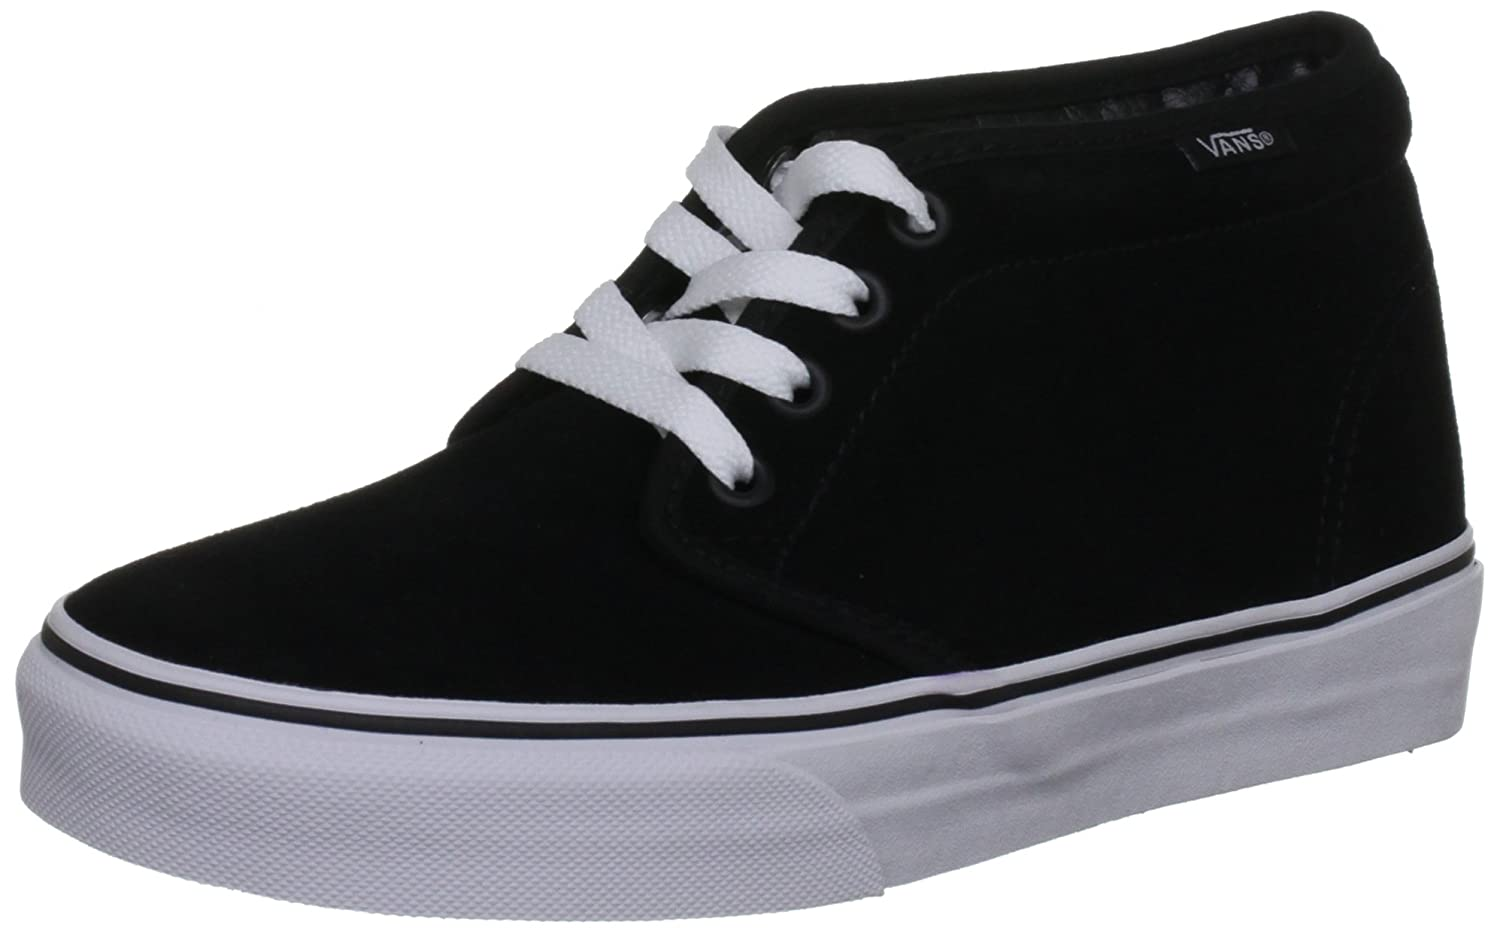 vans chukka boot black